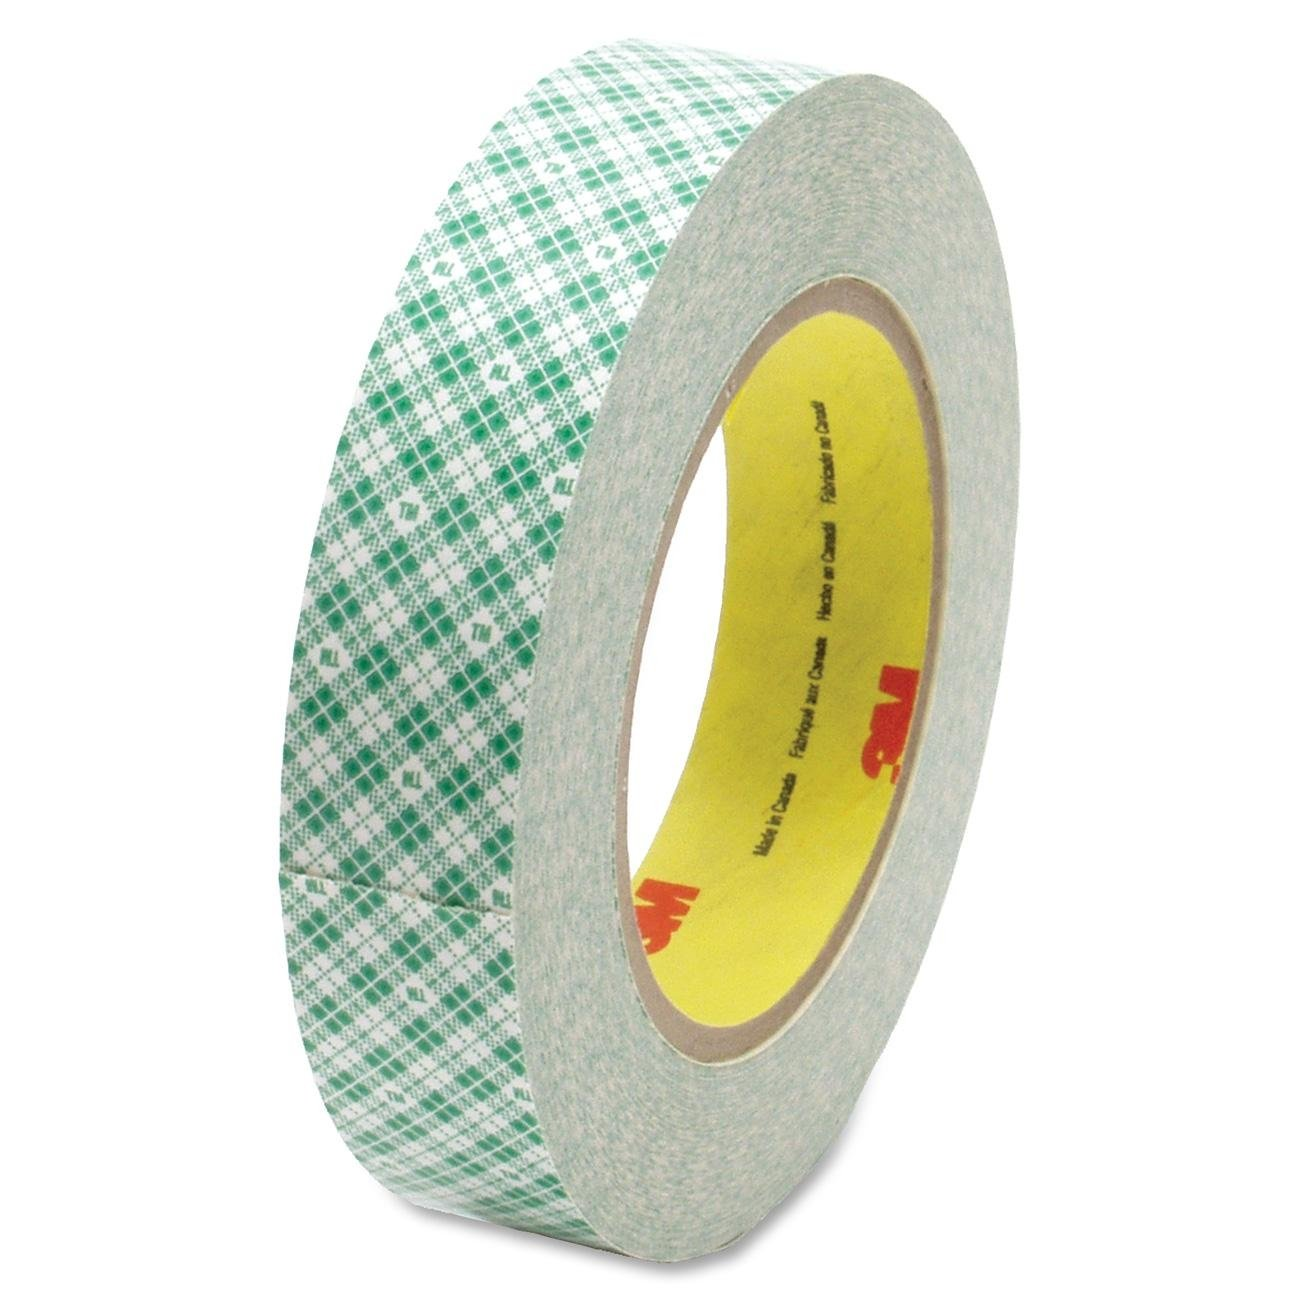 3M Double-Coated Paper Tape 410M2X36 MMM410M2X36 (Pack of 2)